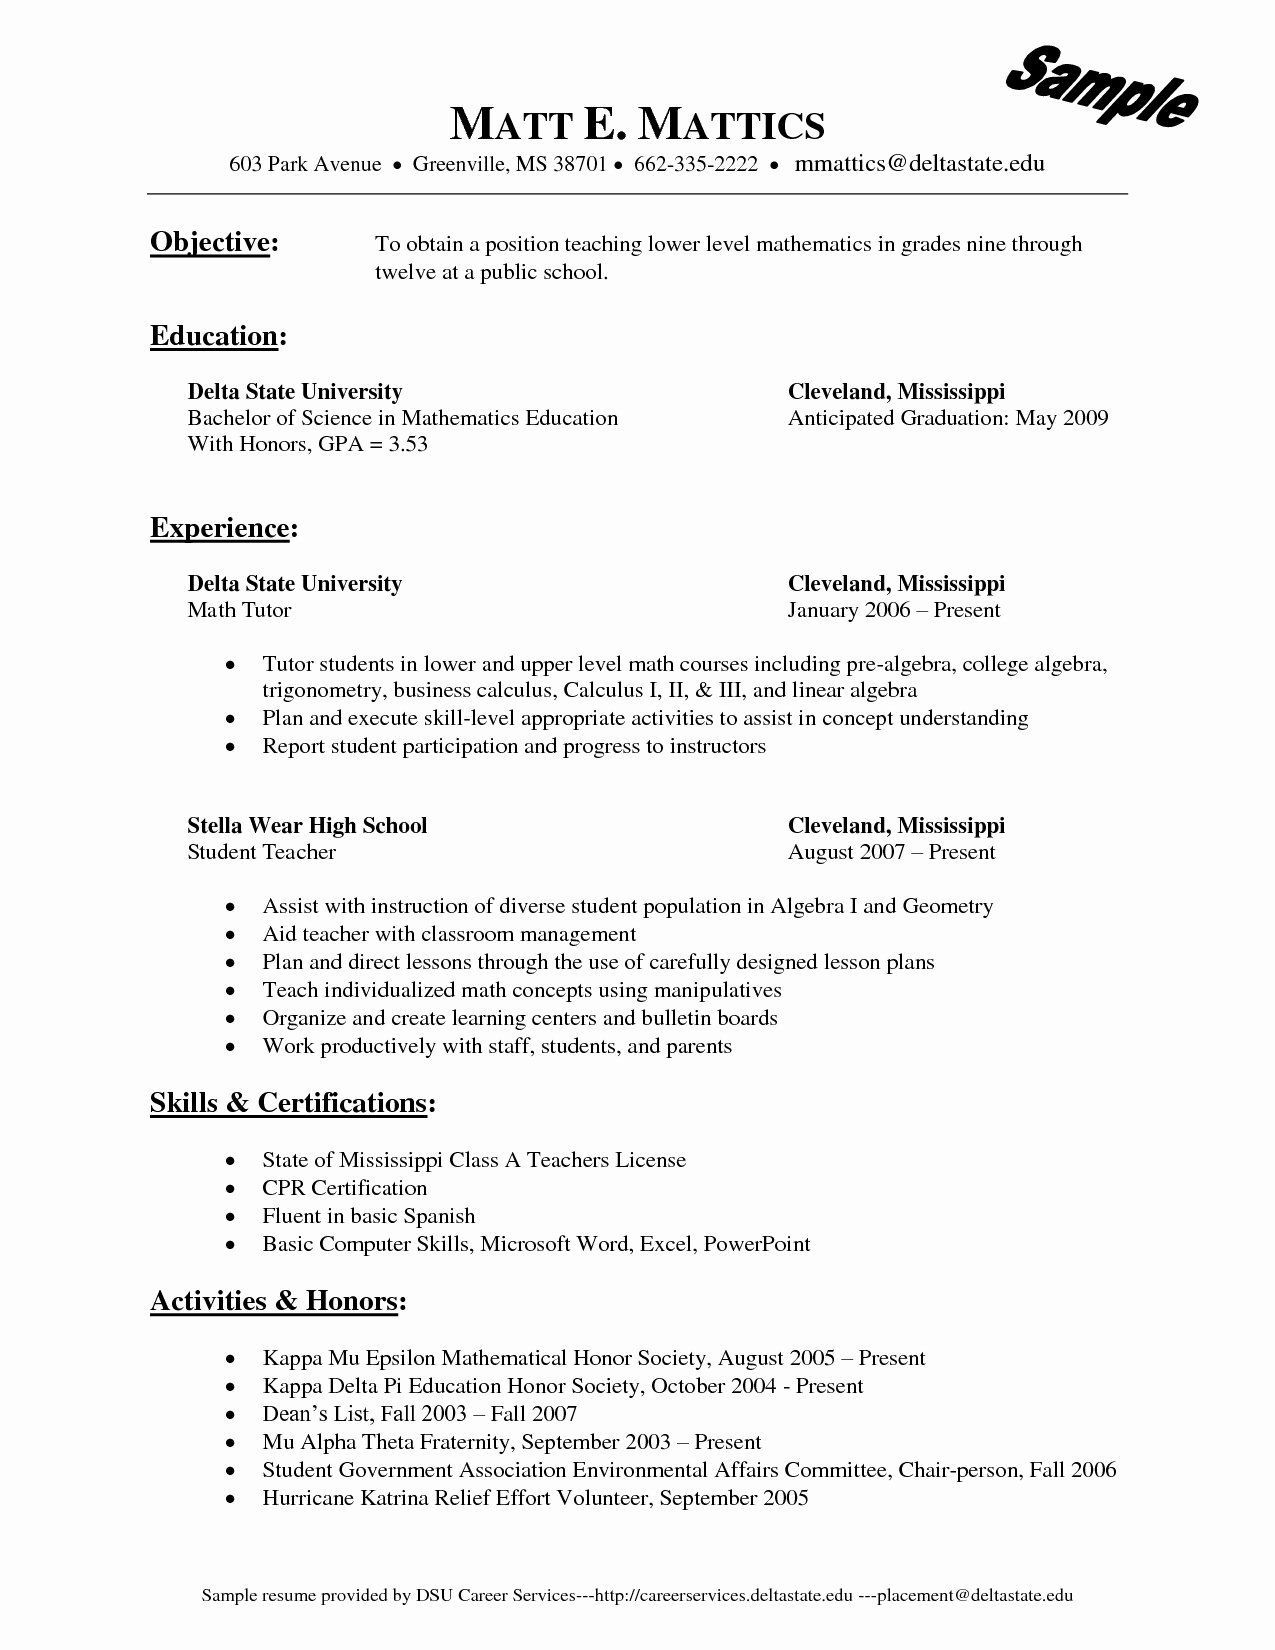 002 Remarkable Resume Template For Wordpad Image  Free Cv DownloadFull